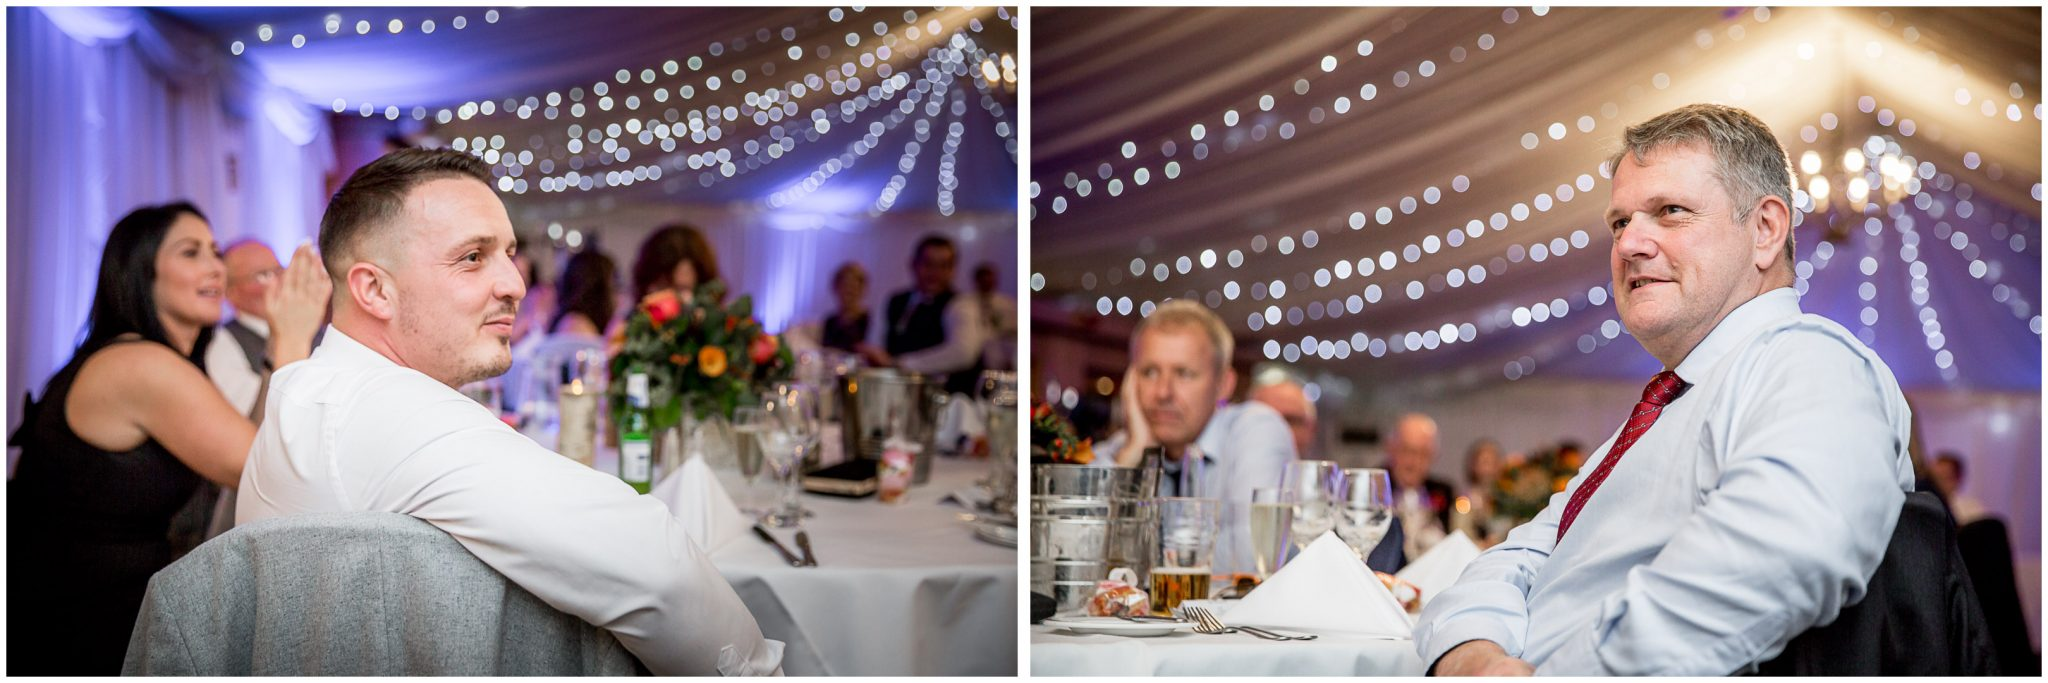 Audleys Wood wedding photograhy guests watch speeches